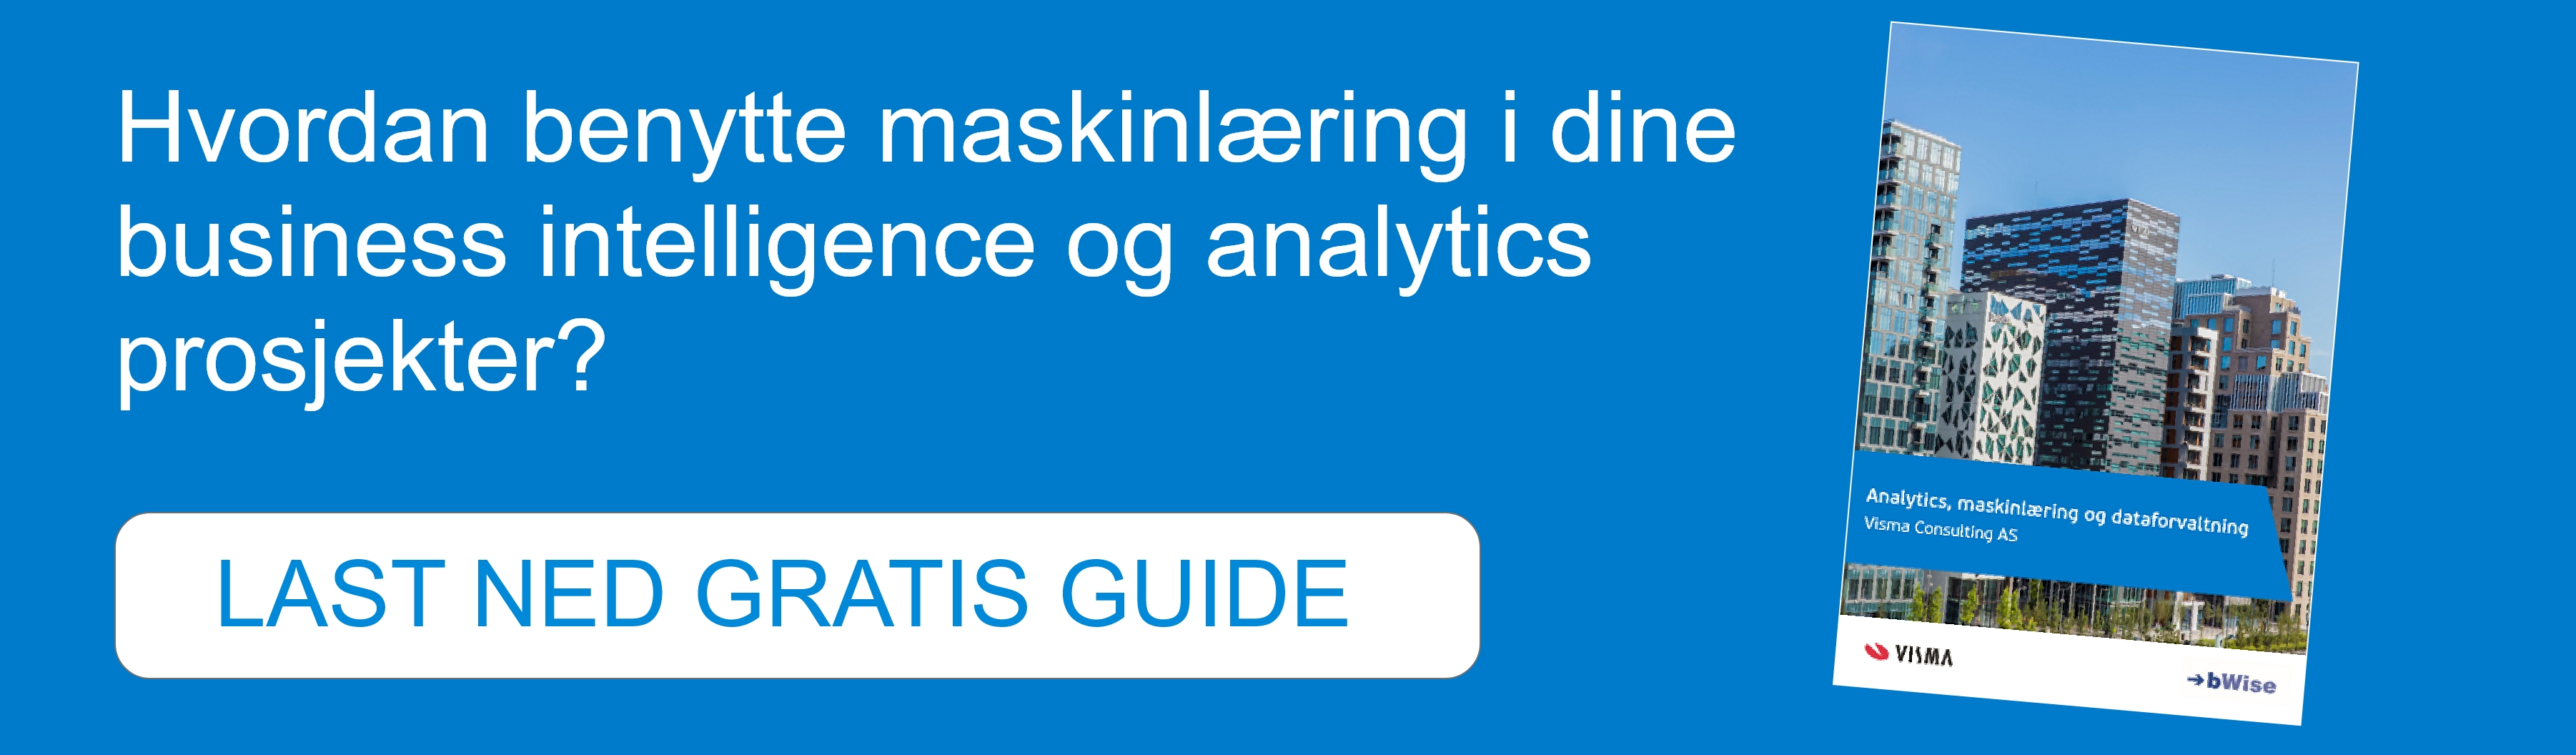 Last ned gratis guide om analytics, business intelligence